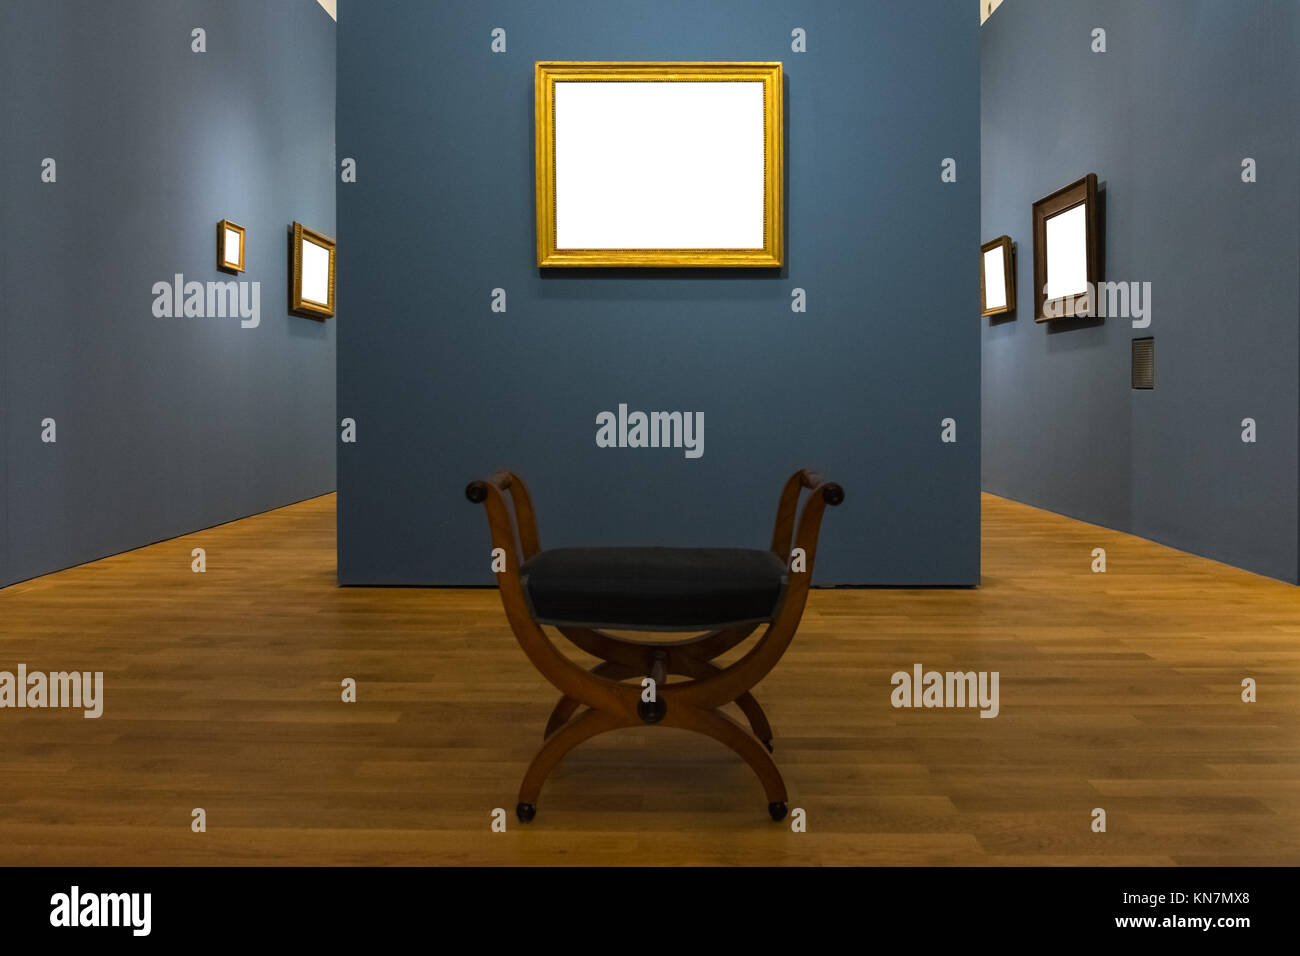 b1954e10bbee Blank Art Museum Isolated Painting Frame Decoration Indoors Wall White  Template